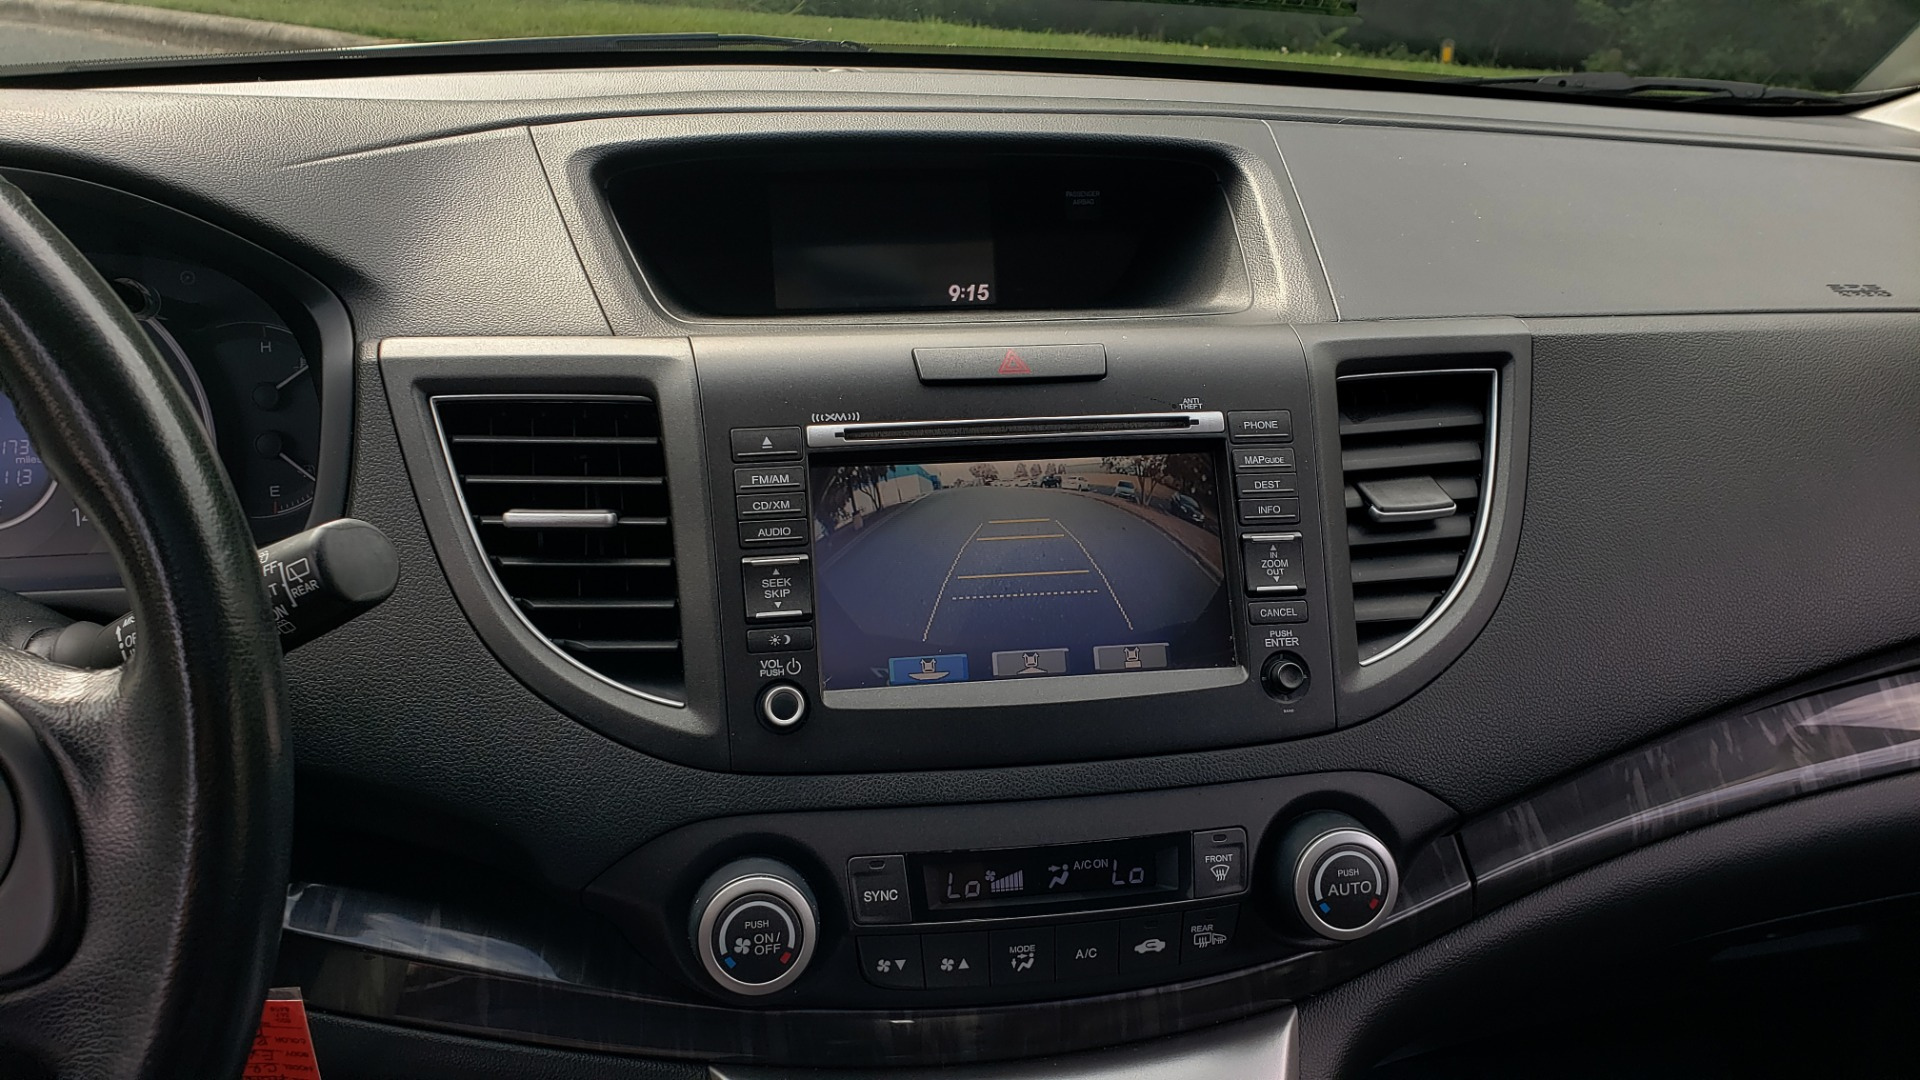 Used 2012 Honda CR-V EX-L / AWD / 5DR / SUNROOF / HEATED SEATS / REARVIEW for sale Sold at Formula Imports in Charlotte NC 28227 39